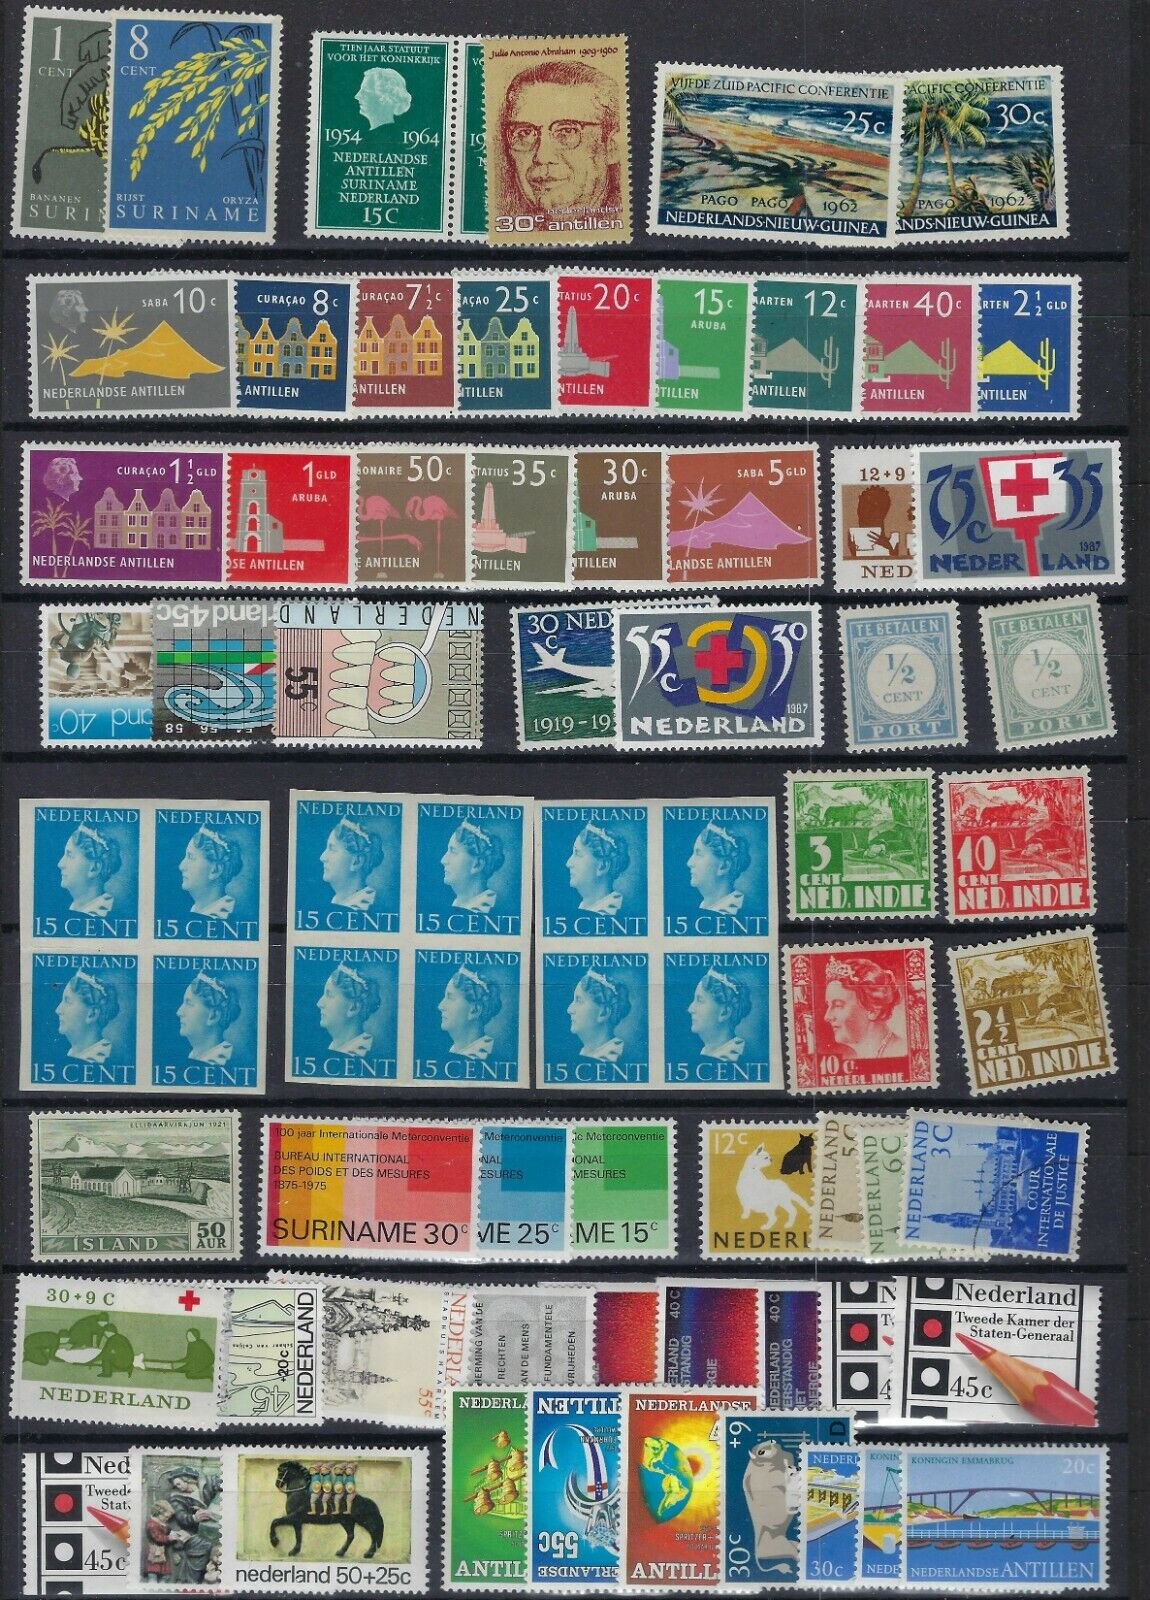 EUROPE NETHERLANDS COLONIES 1940 1980s COLLECTION OF 150 PLUS - $89.99